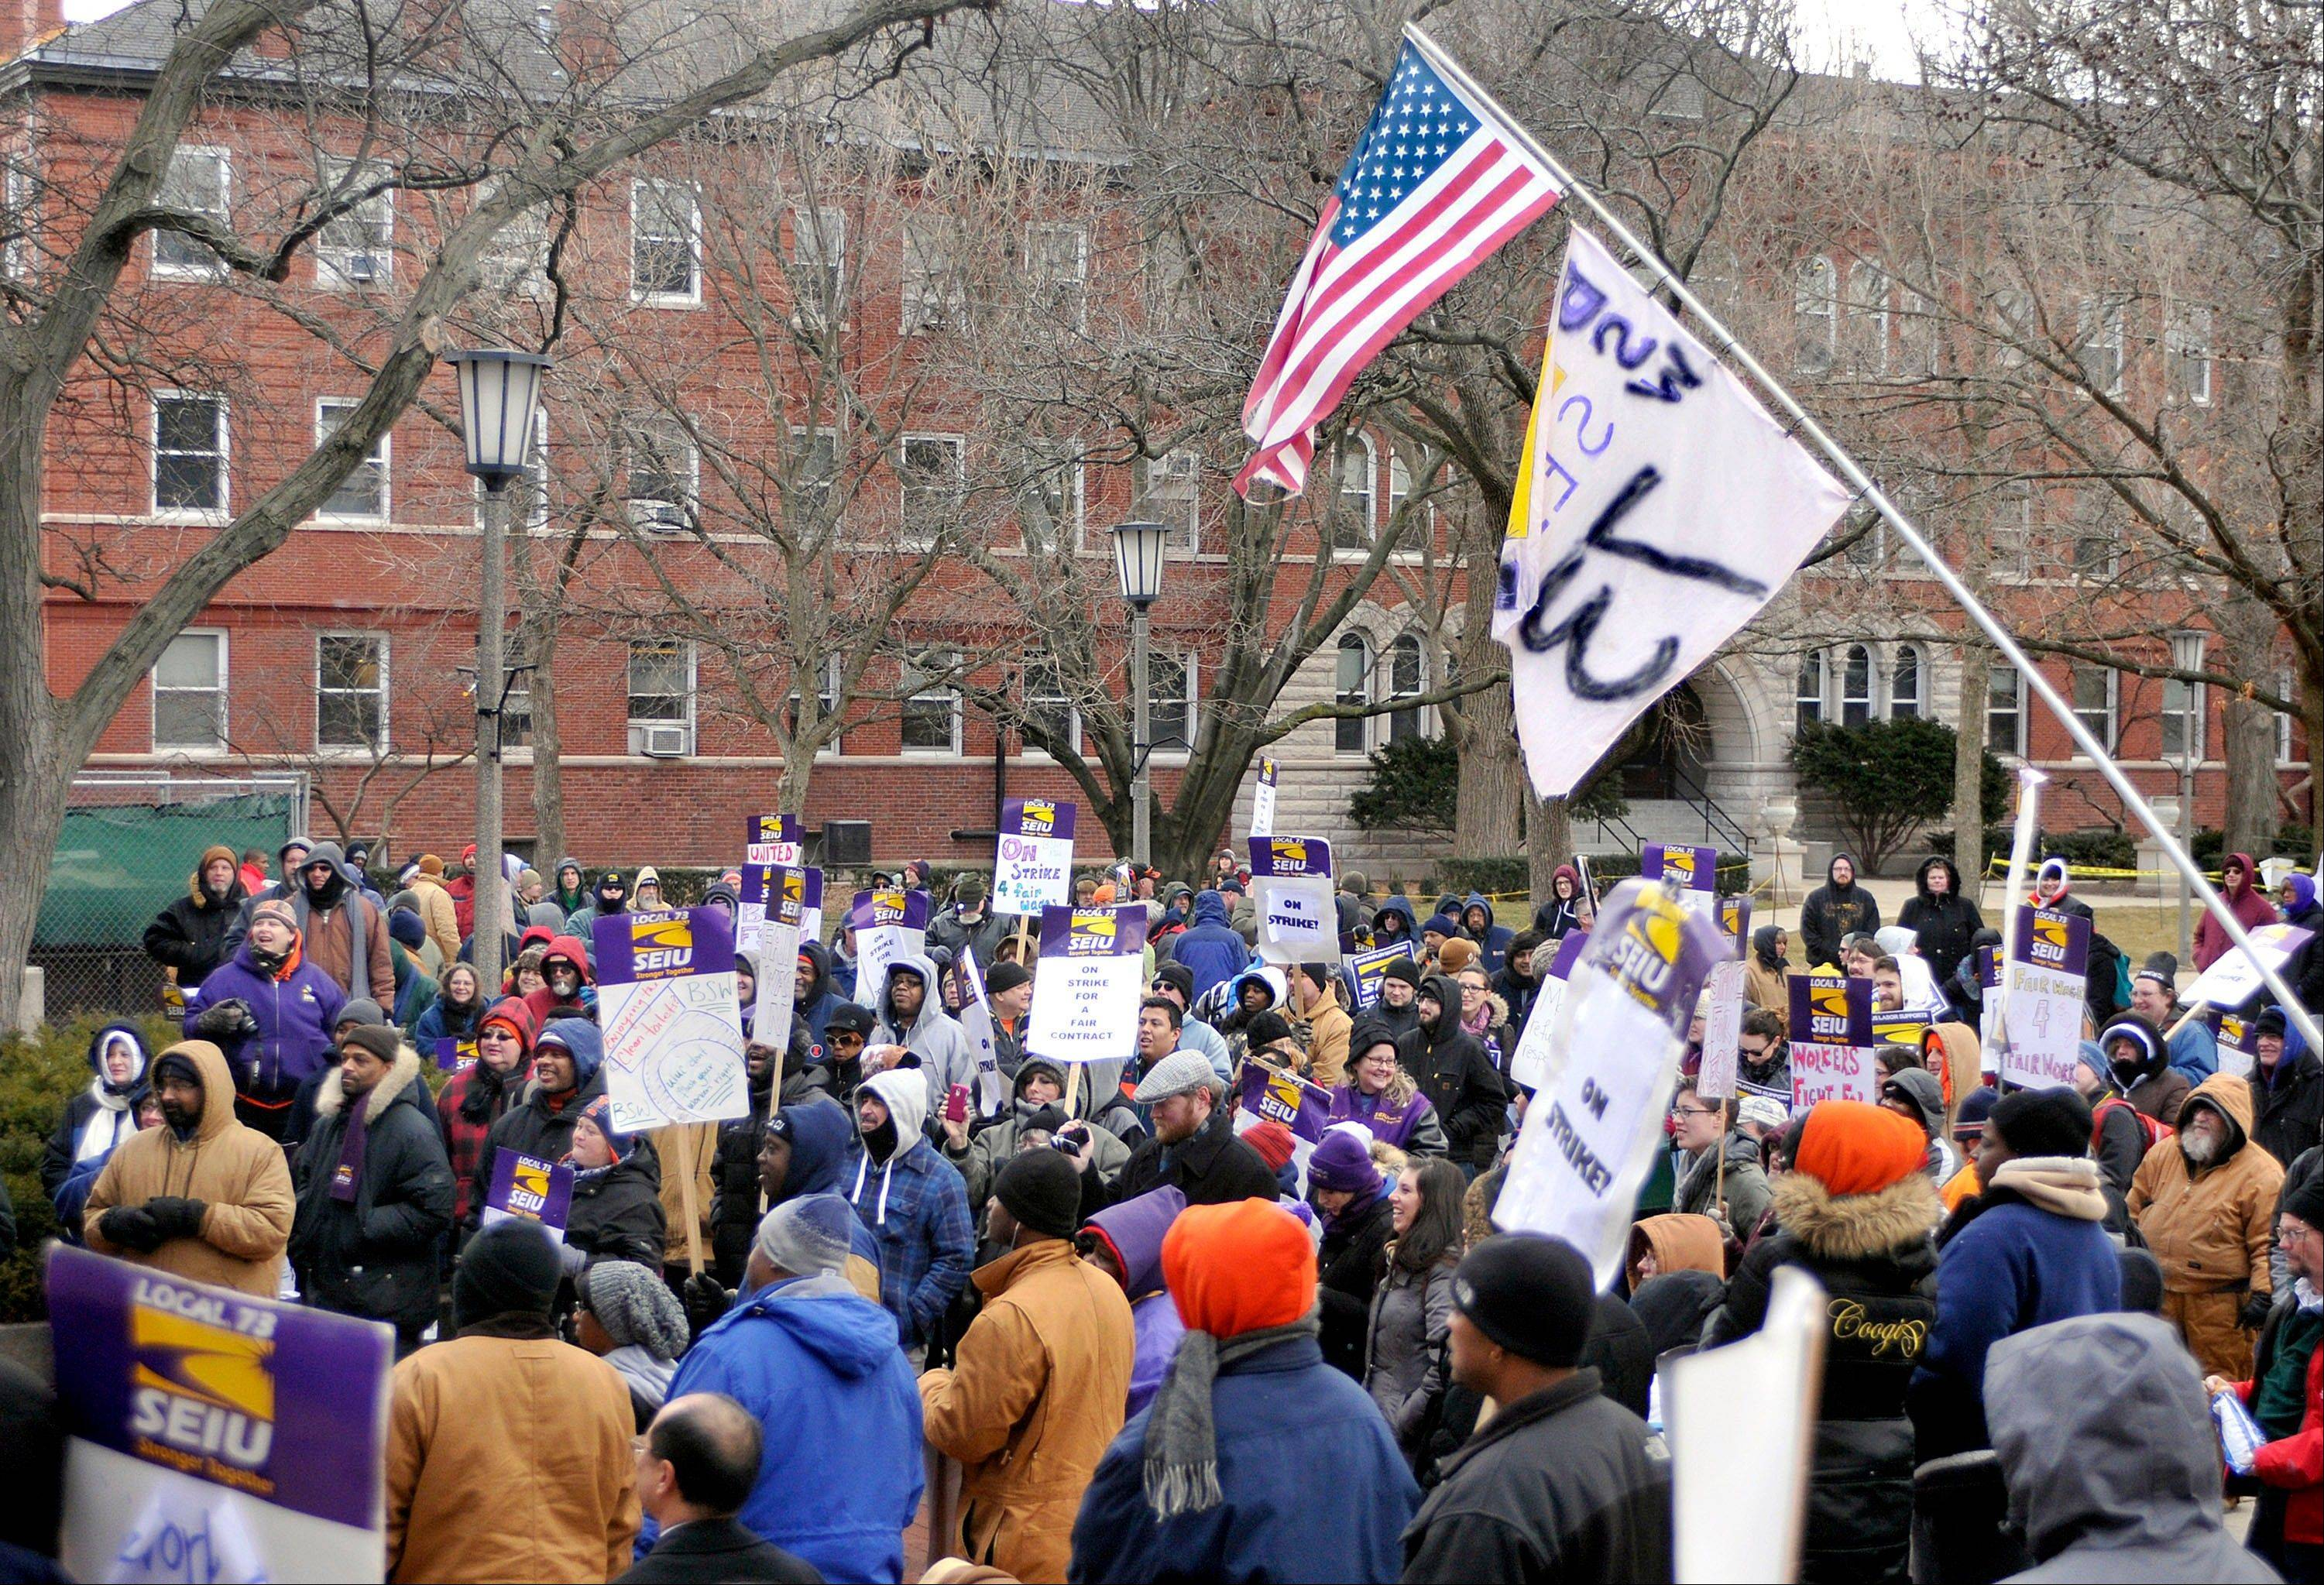 Members of Service Employees International Union Local 73 hold a rally on the University of Illinois Quad as their strike continues Wednesday in Urbana.